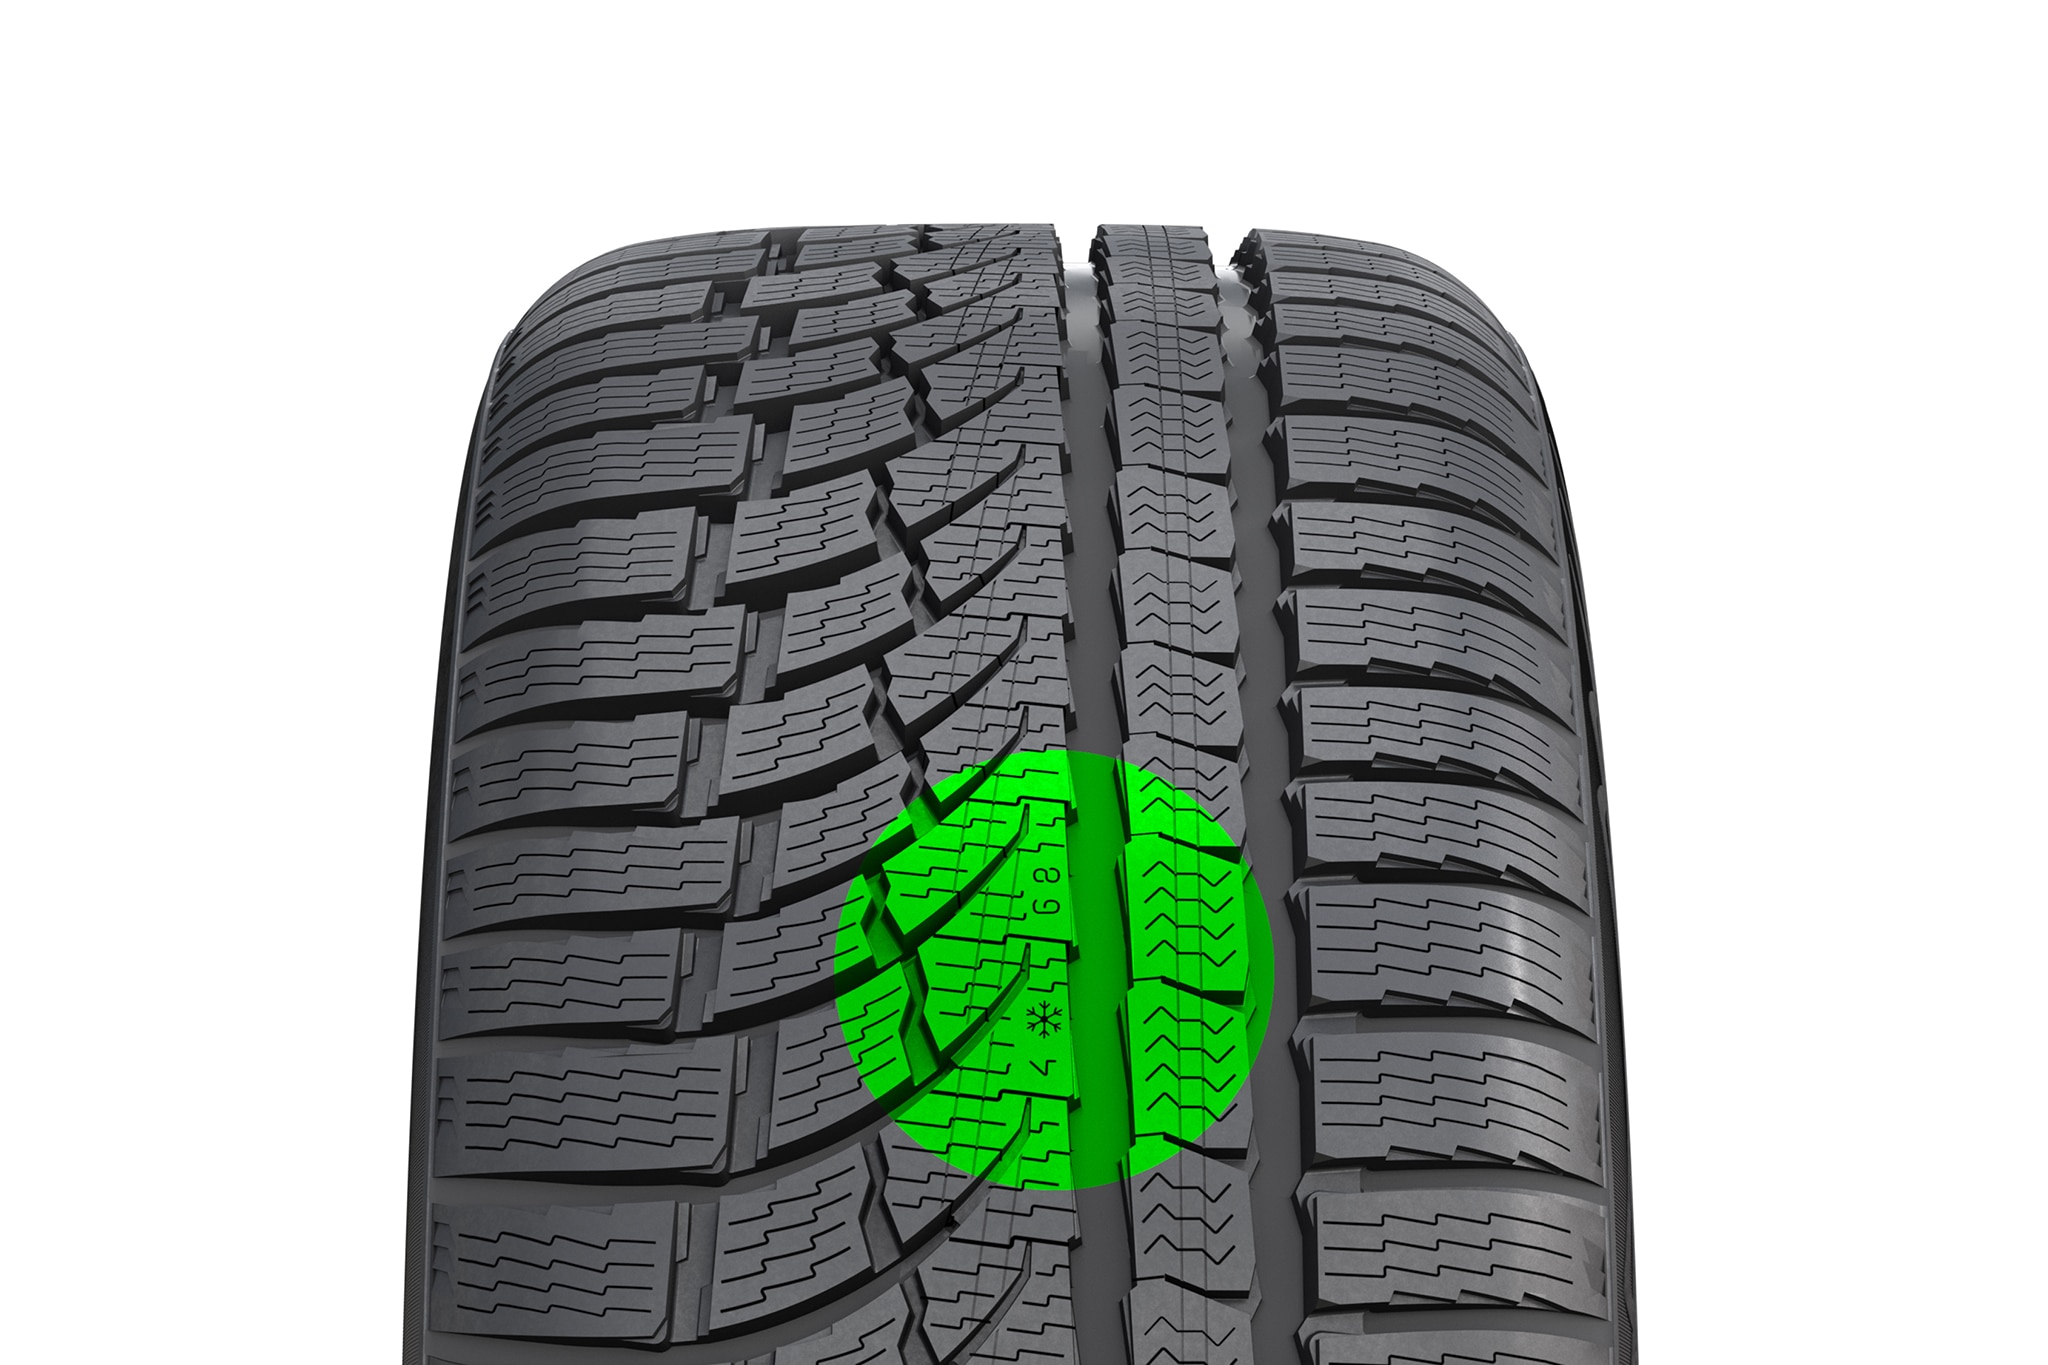 Nokian All Weather Tires >> Nokian WR G4 Tire: It's All-Weather, Not All-Season   Automobile Magazine